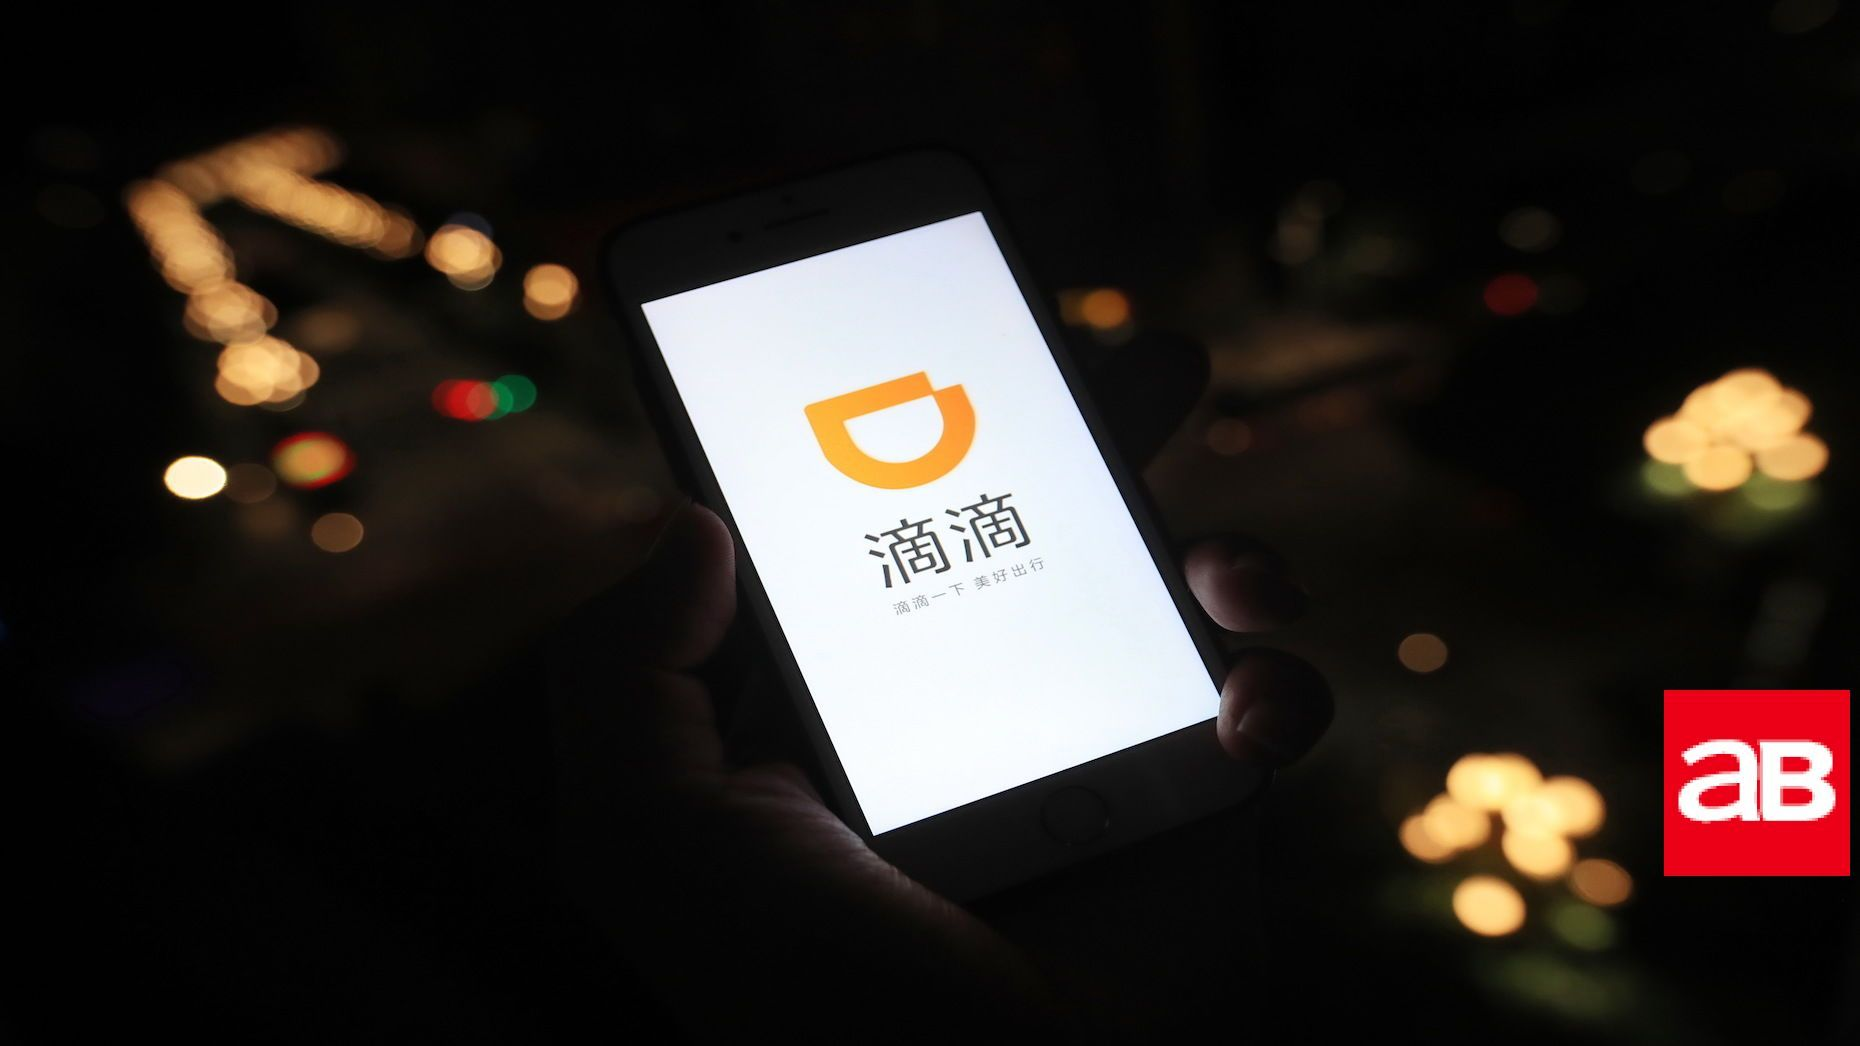 Car Giant Toyota is Investing $600 Million into Didi Chuxing